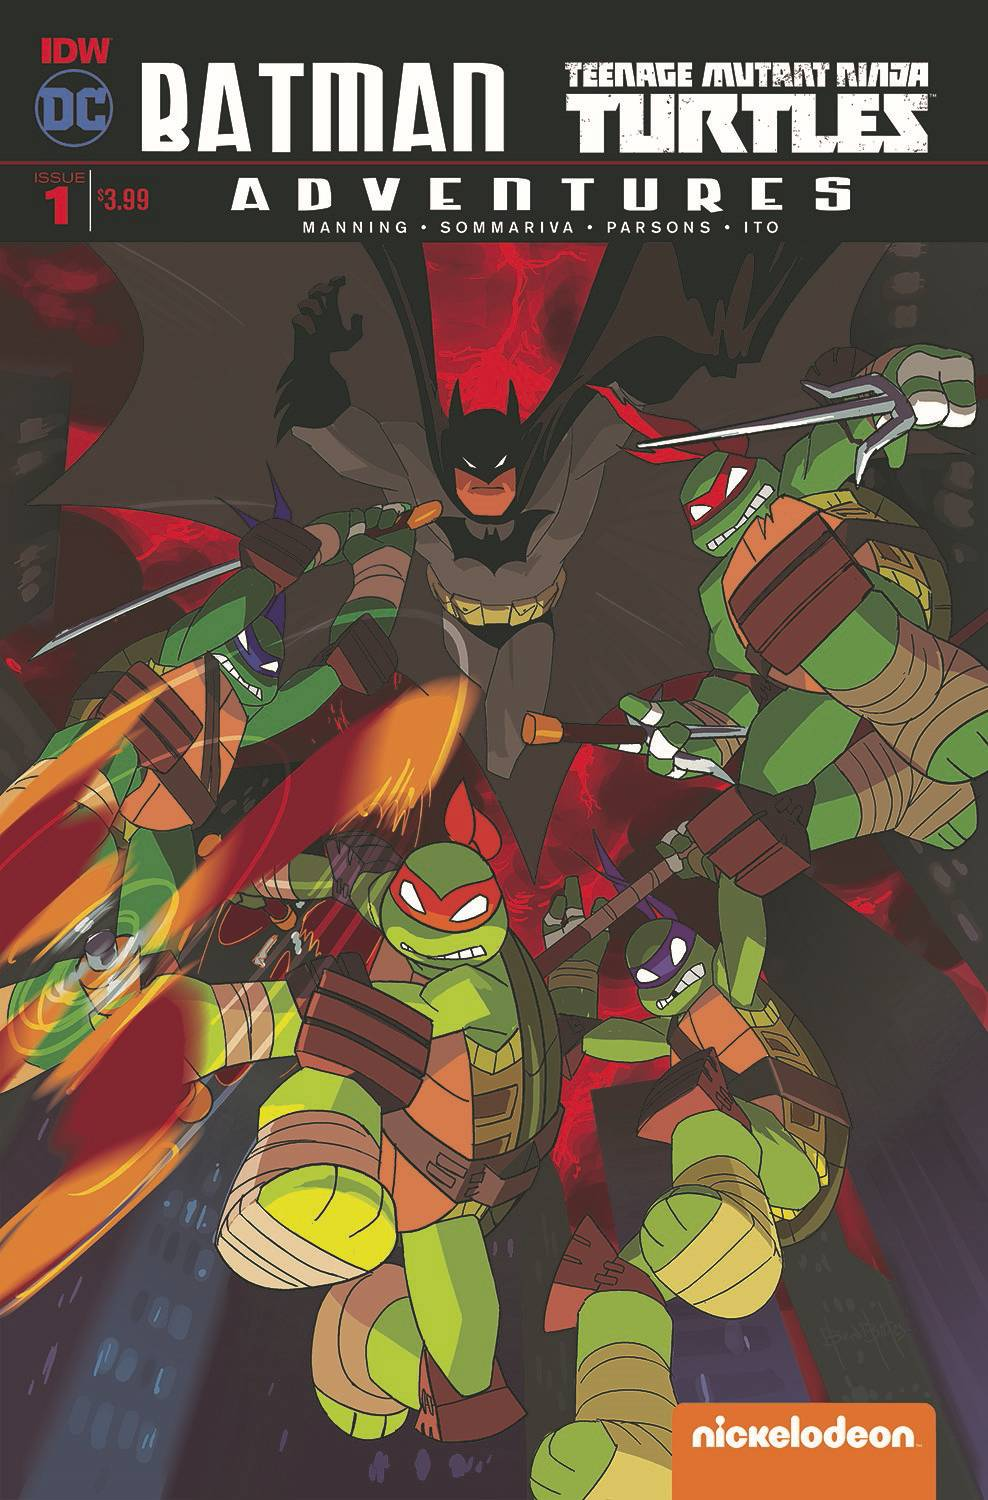 Batman TMNT Adventures #1 Second Printing [IDW Comic]